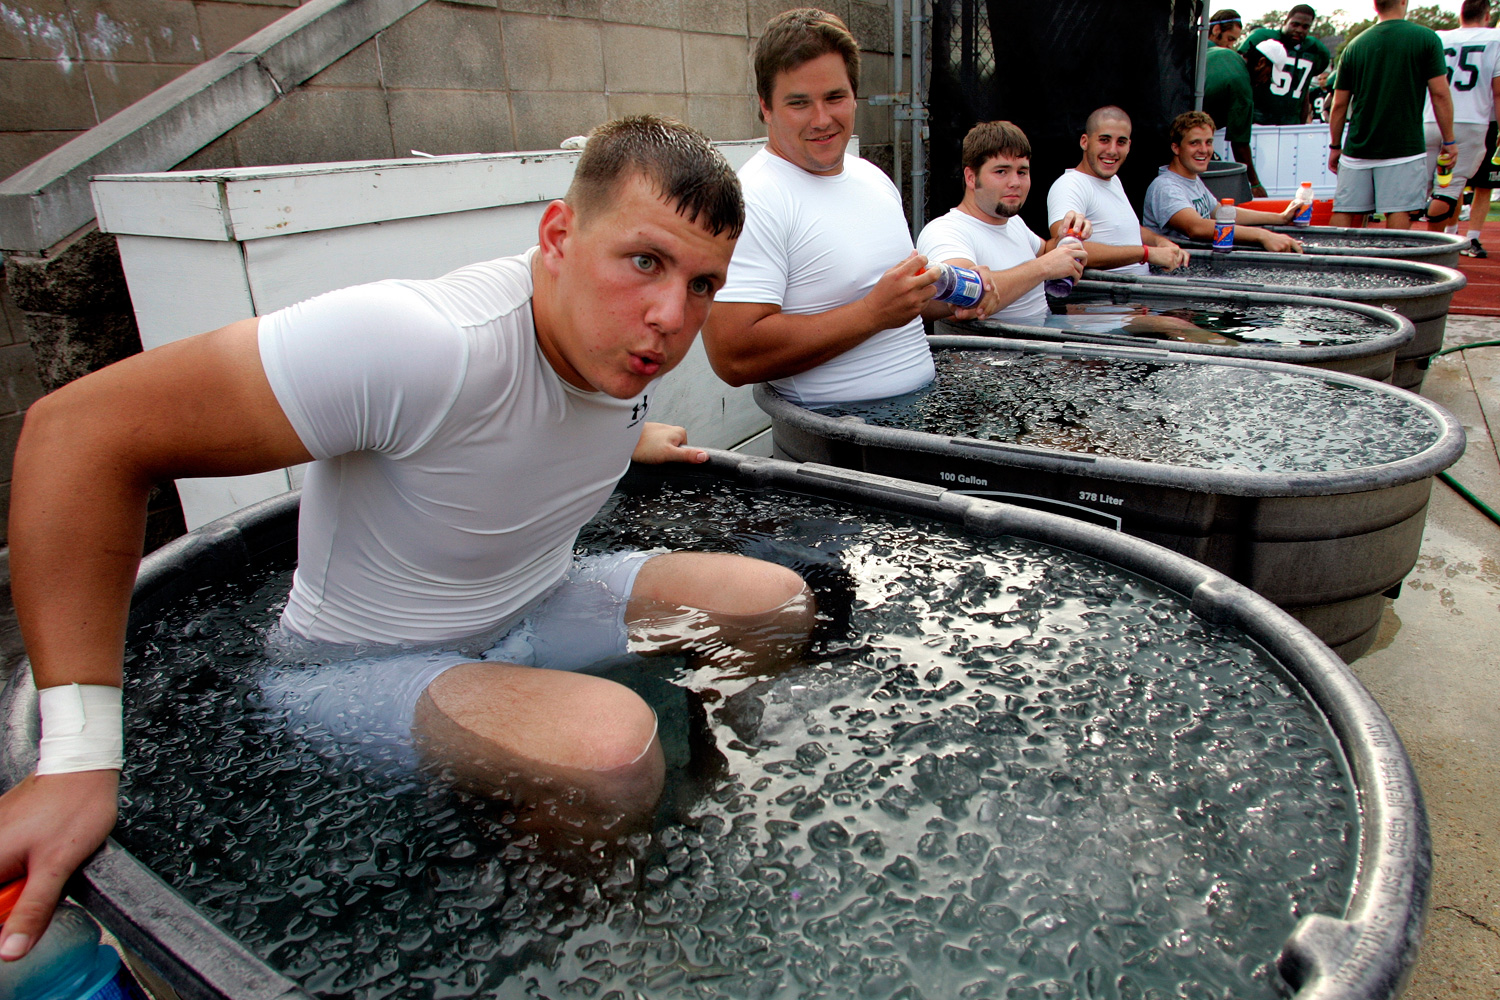 Tulane tight end Justin Kessler (L) takes his time getting into his ice bath after practice in New Orleans. The team has 14 tubs with four 40-pound bags of ice going into each tub, and more added as the players rotate into the bath for about five minutes.